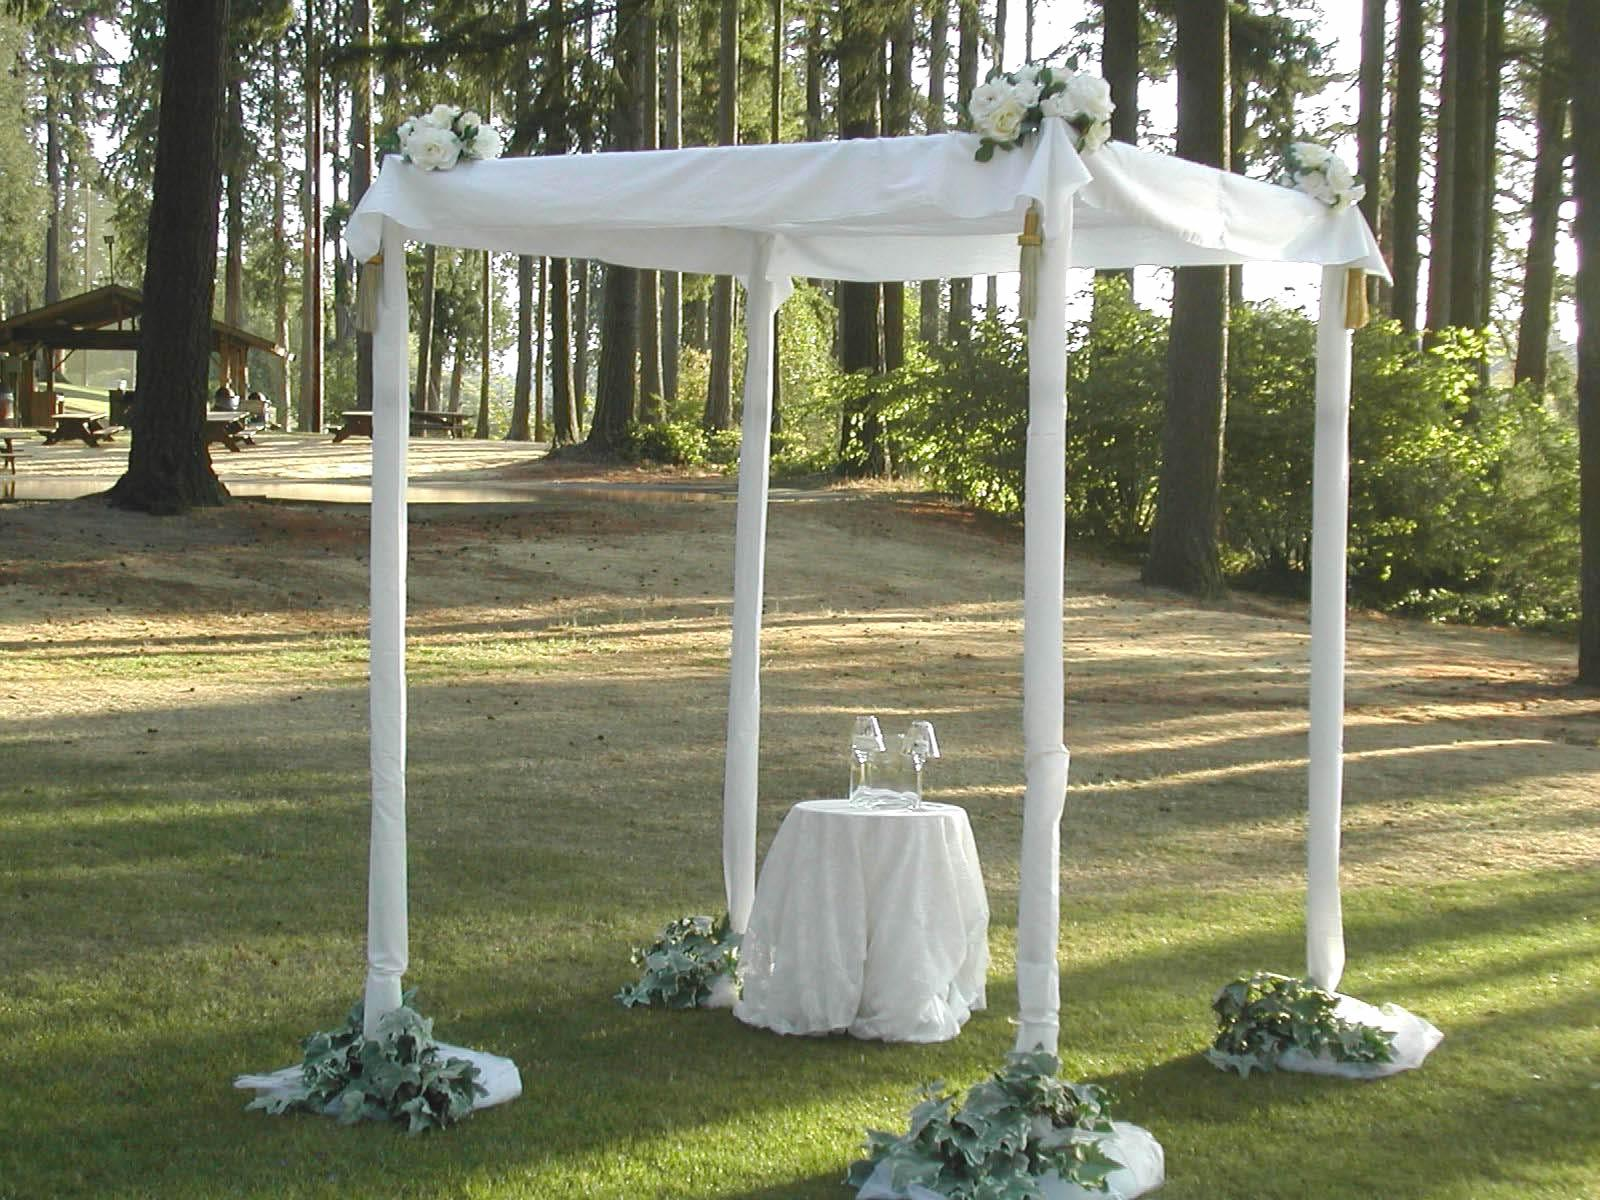 The chuppah is traditionally a